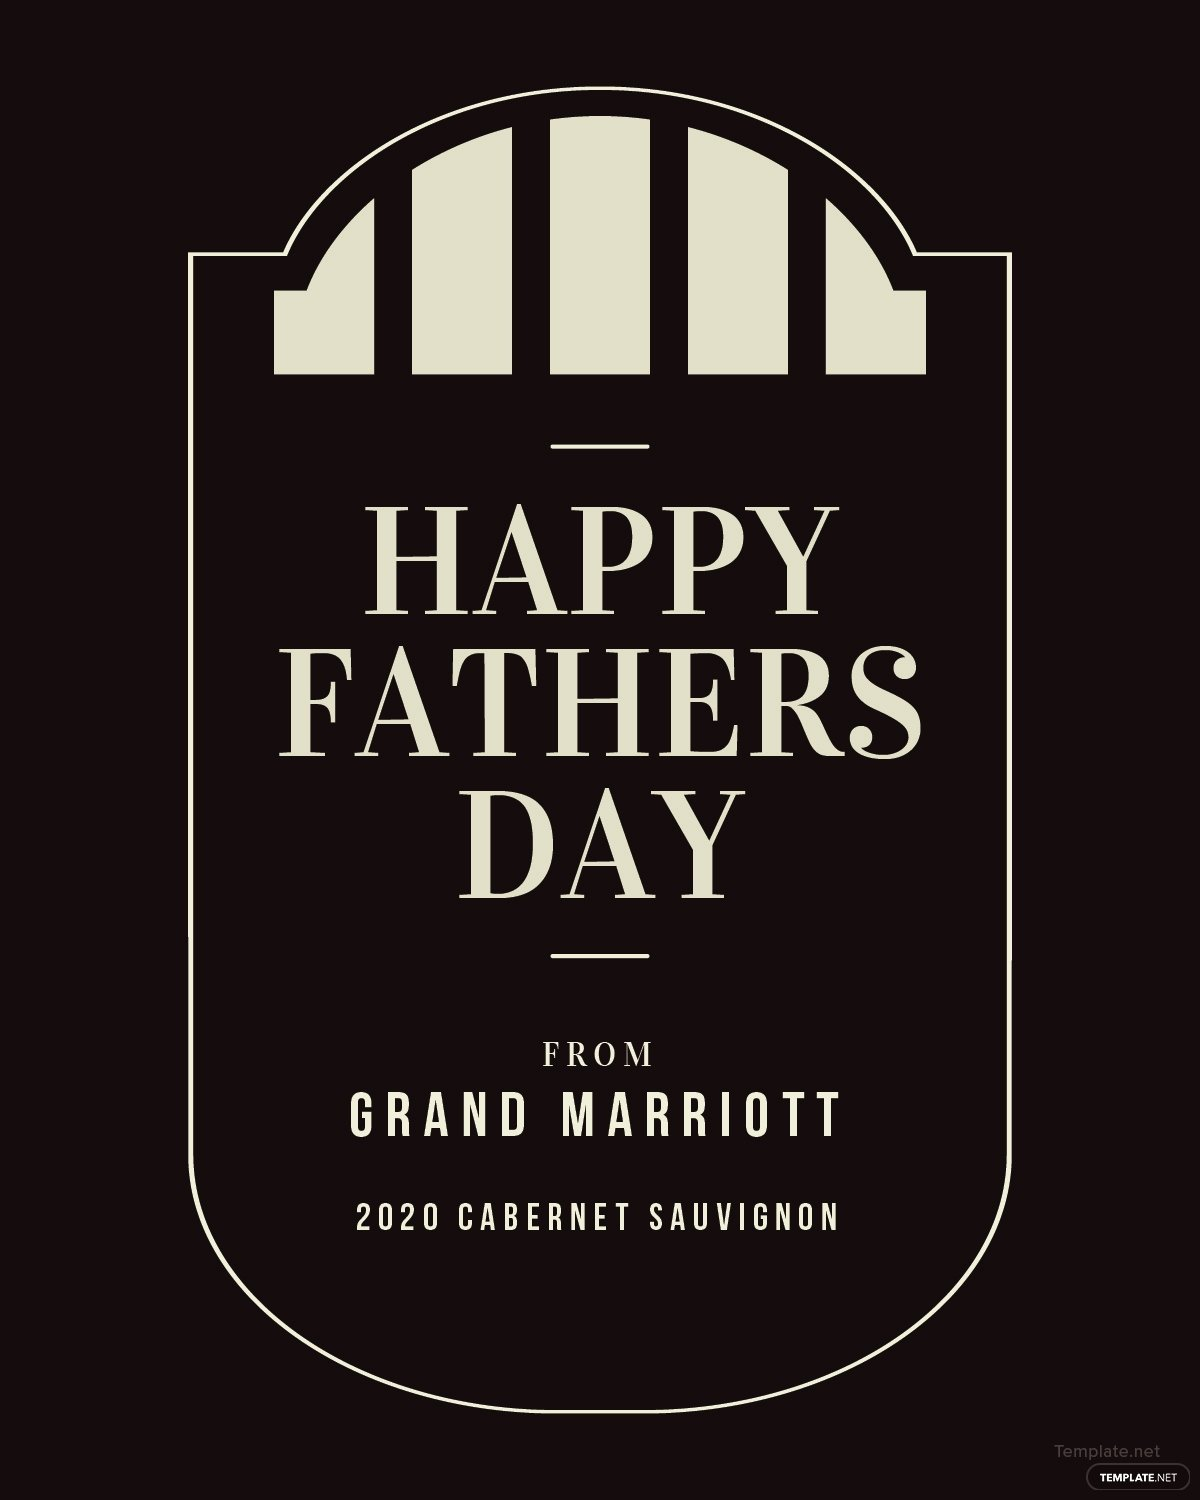 Wine Label Template Photoshop Awesome Free Fathers Day Wine Label Template In Psd Ms Word Publisher Illustrator Indesign Apple